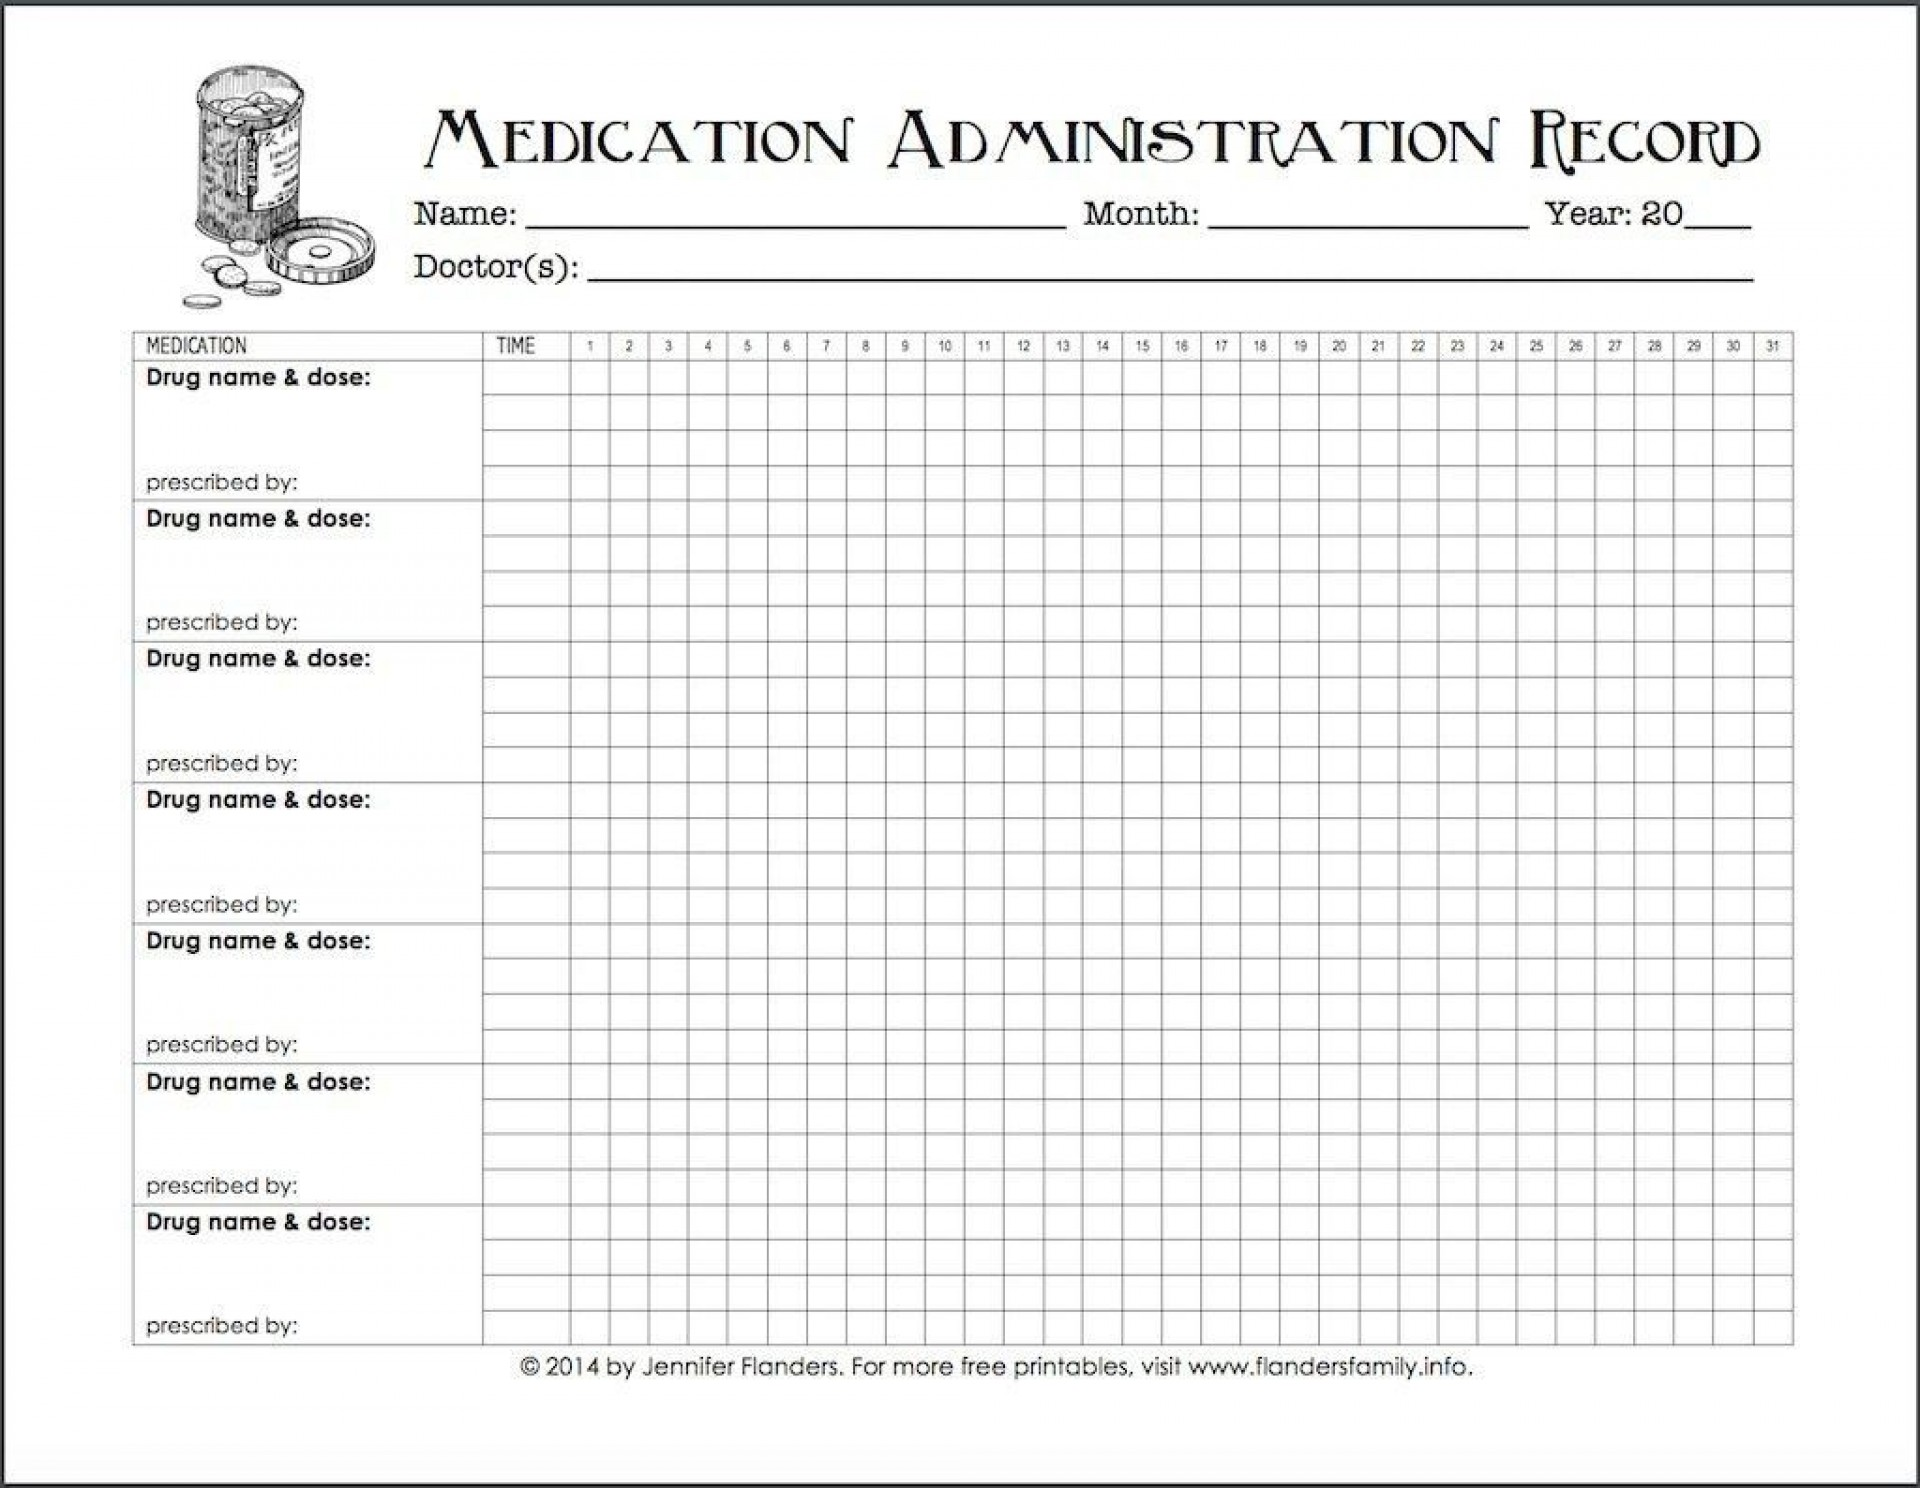 005 Excellent Medication Administration Record Form Download Highest Quality 1920